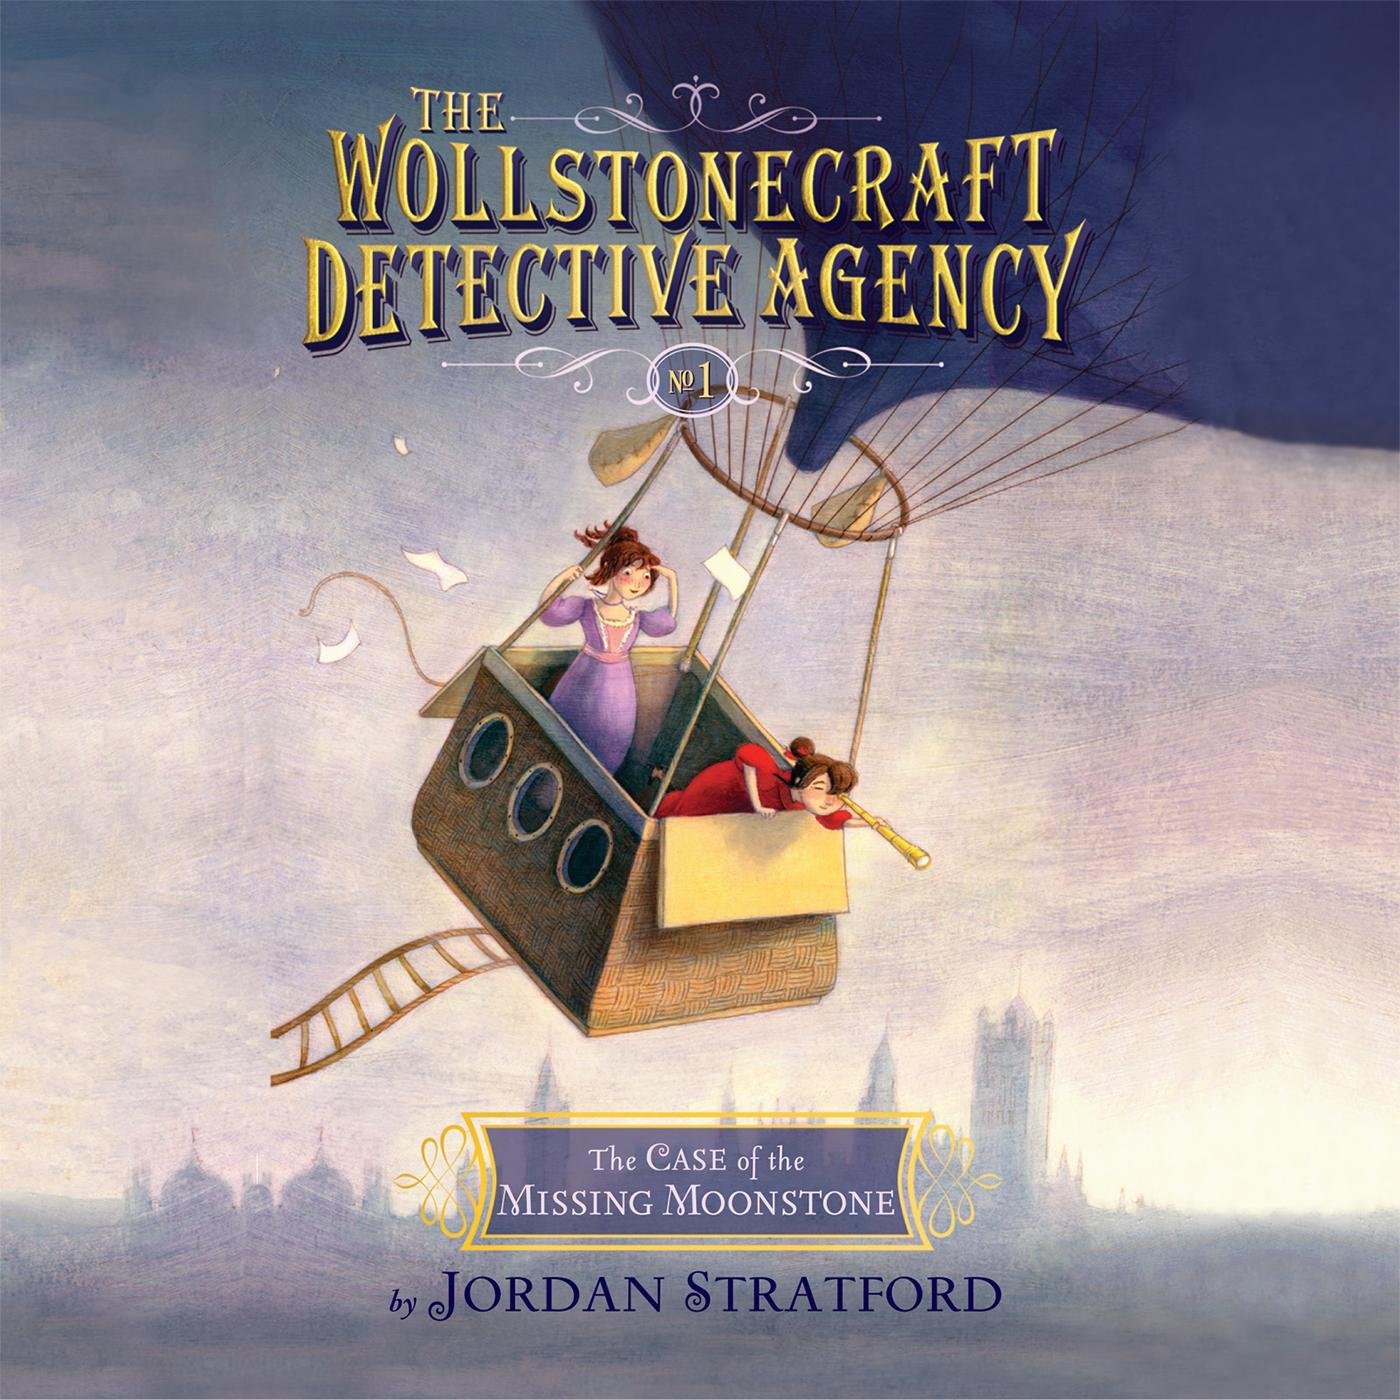 The Case of the Missing Moonstone (Wollstonecraft Detective Agency)